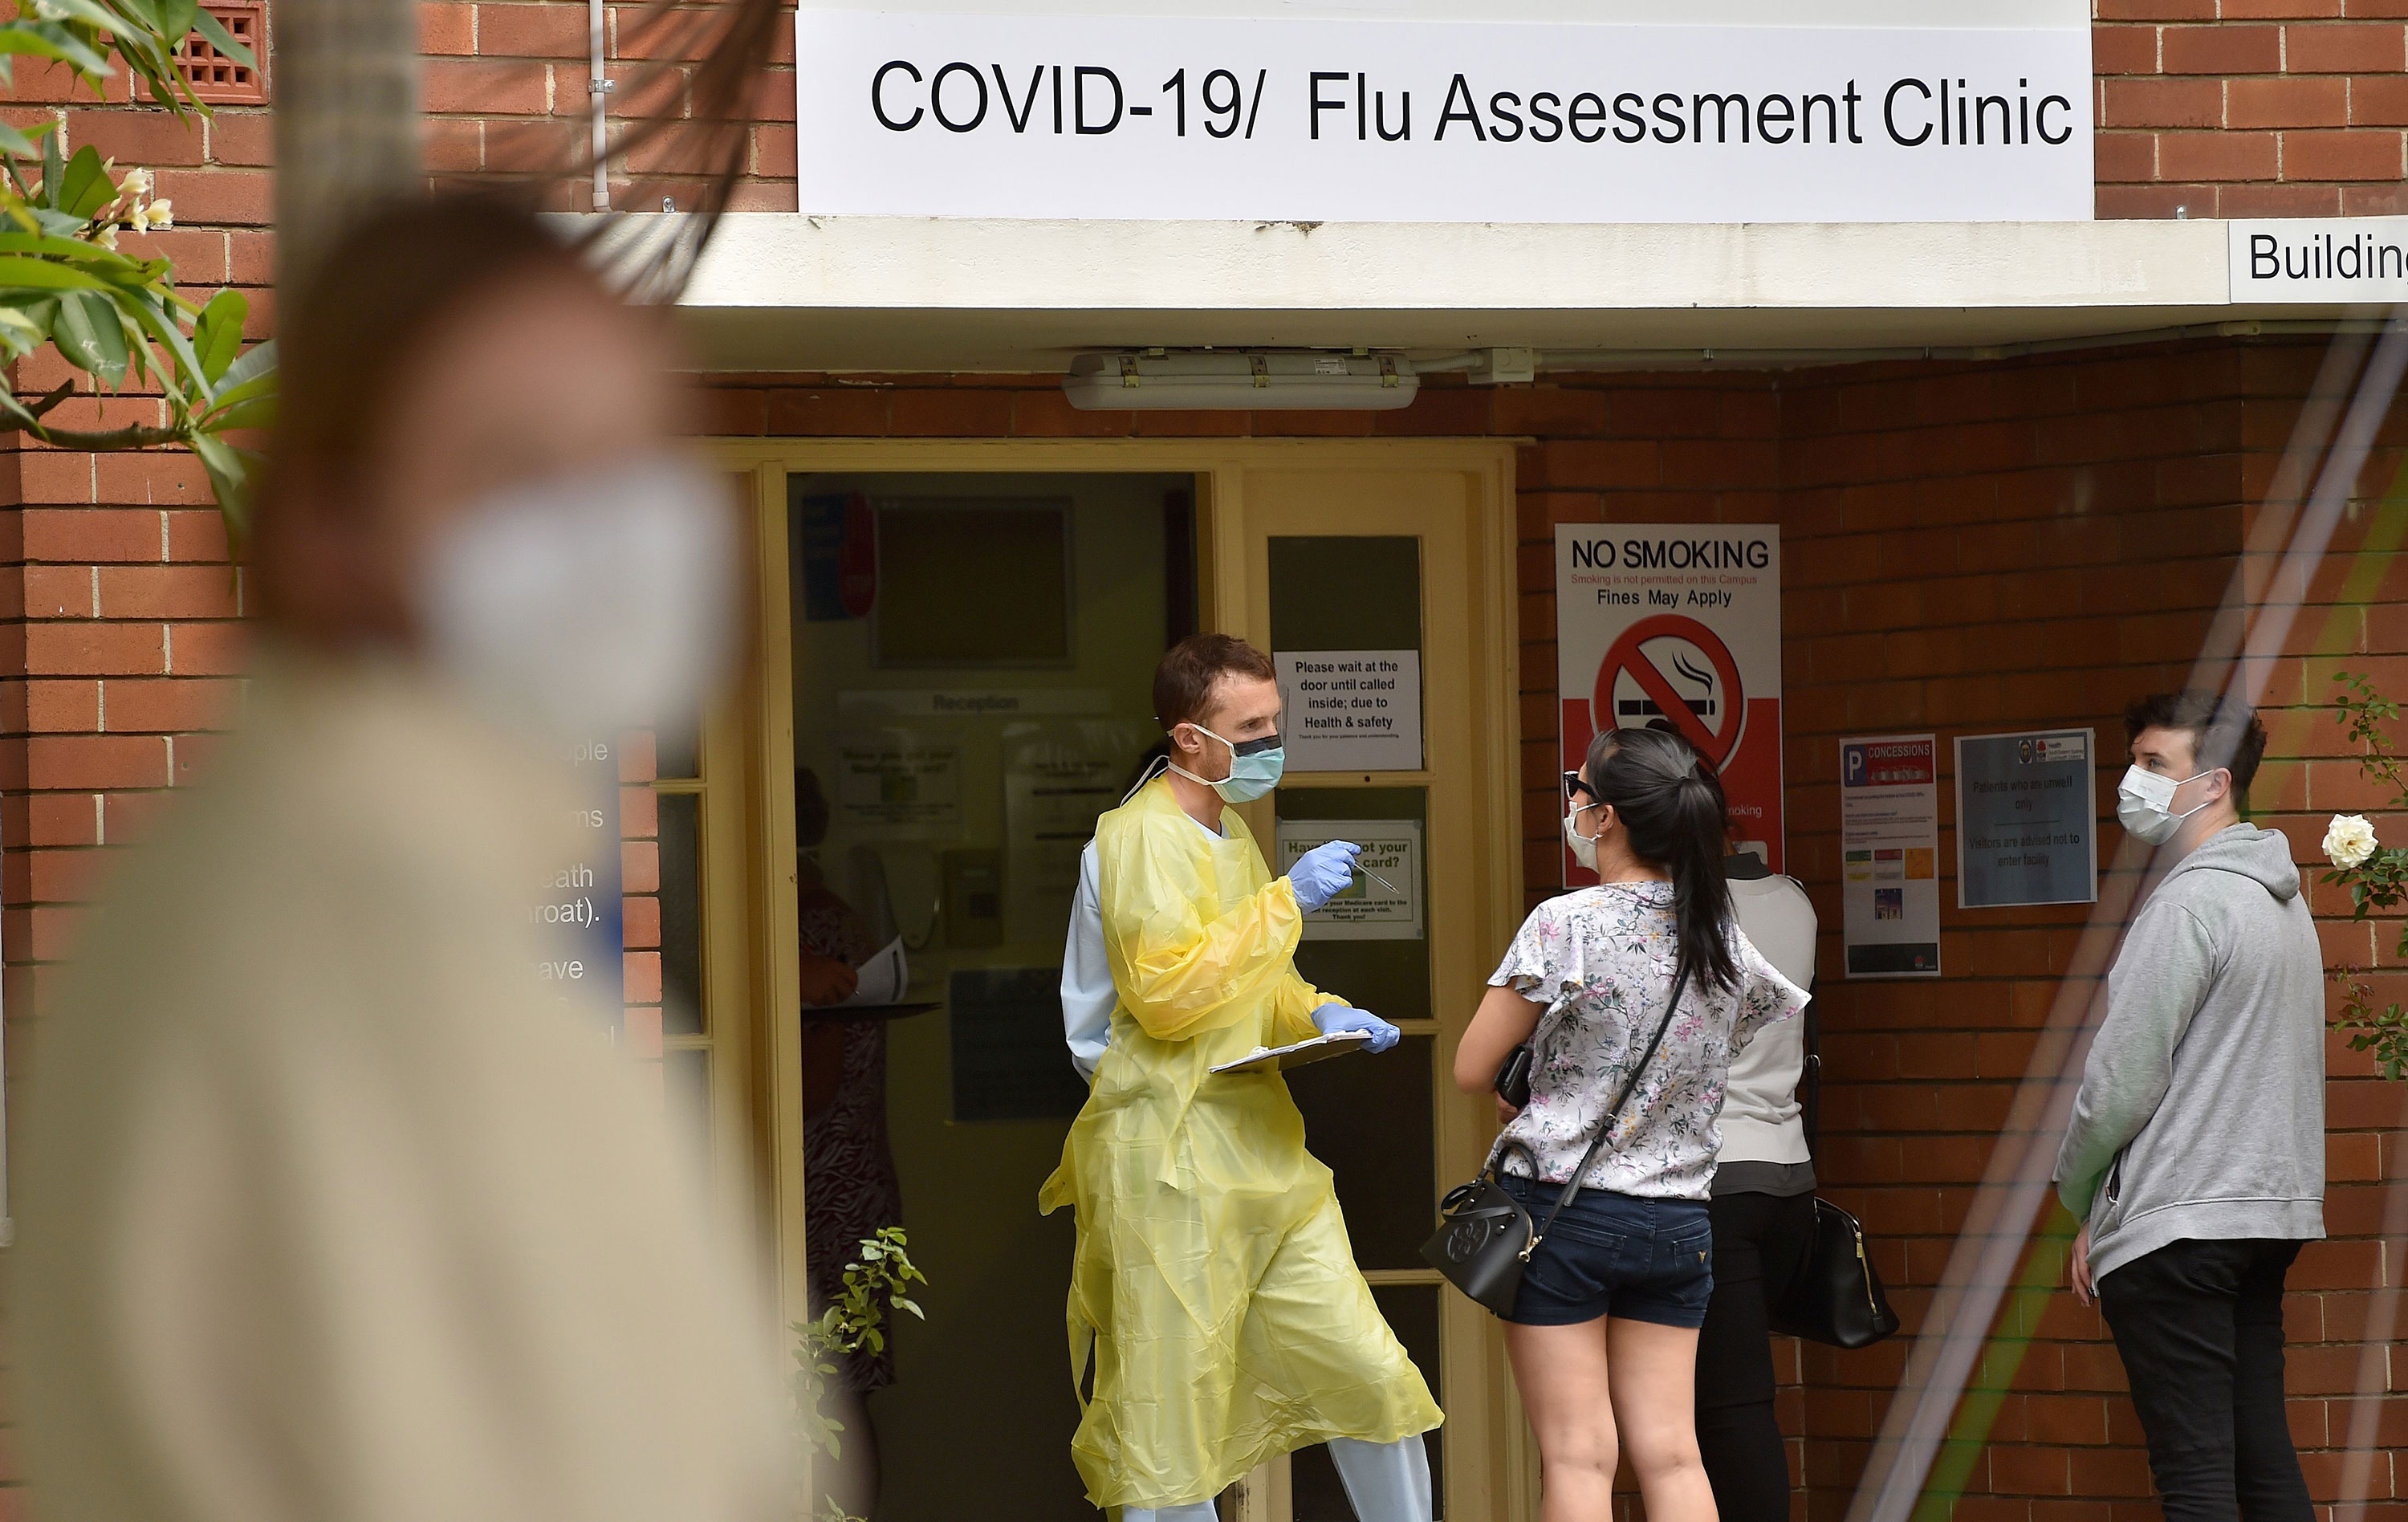 A health worker assists visitors at a coronavirus testing center in Sydney on March 23.